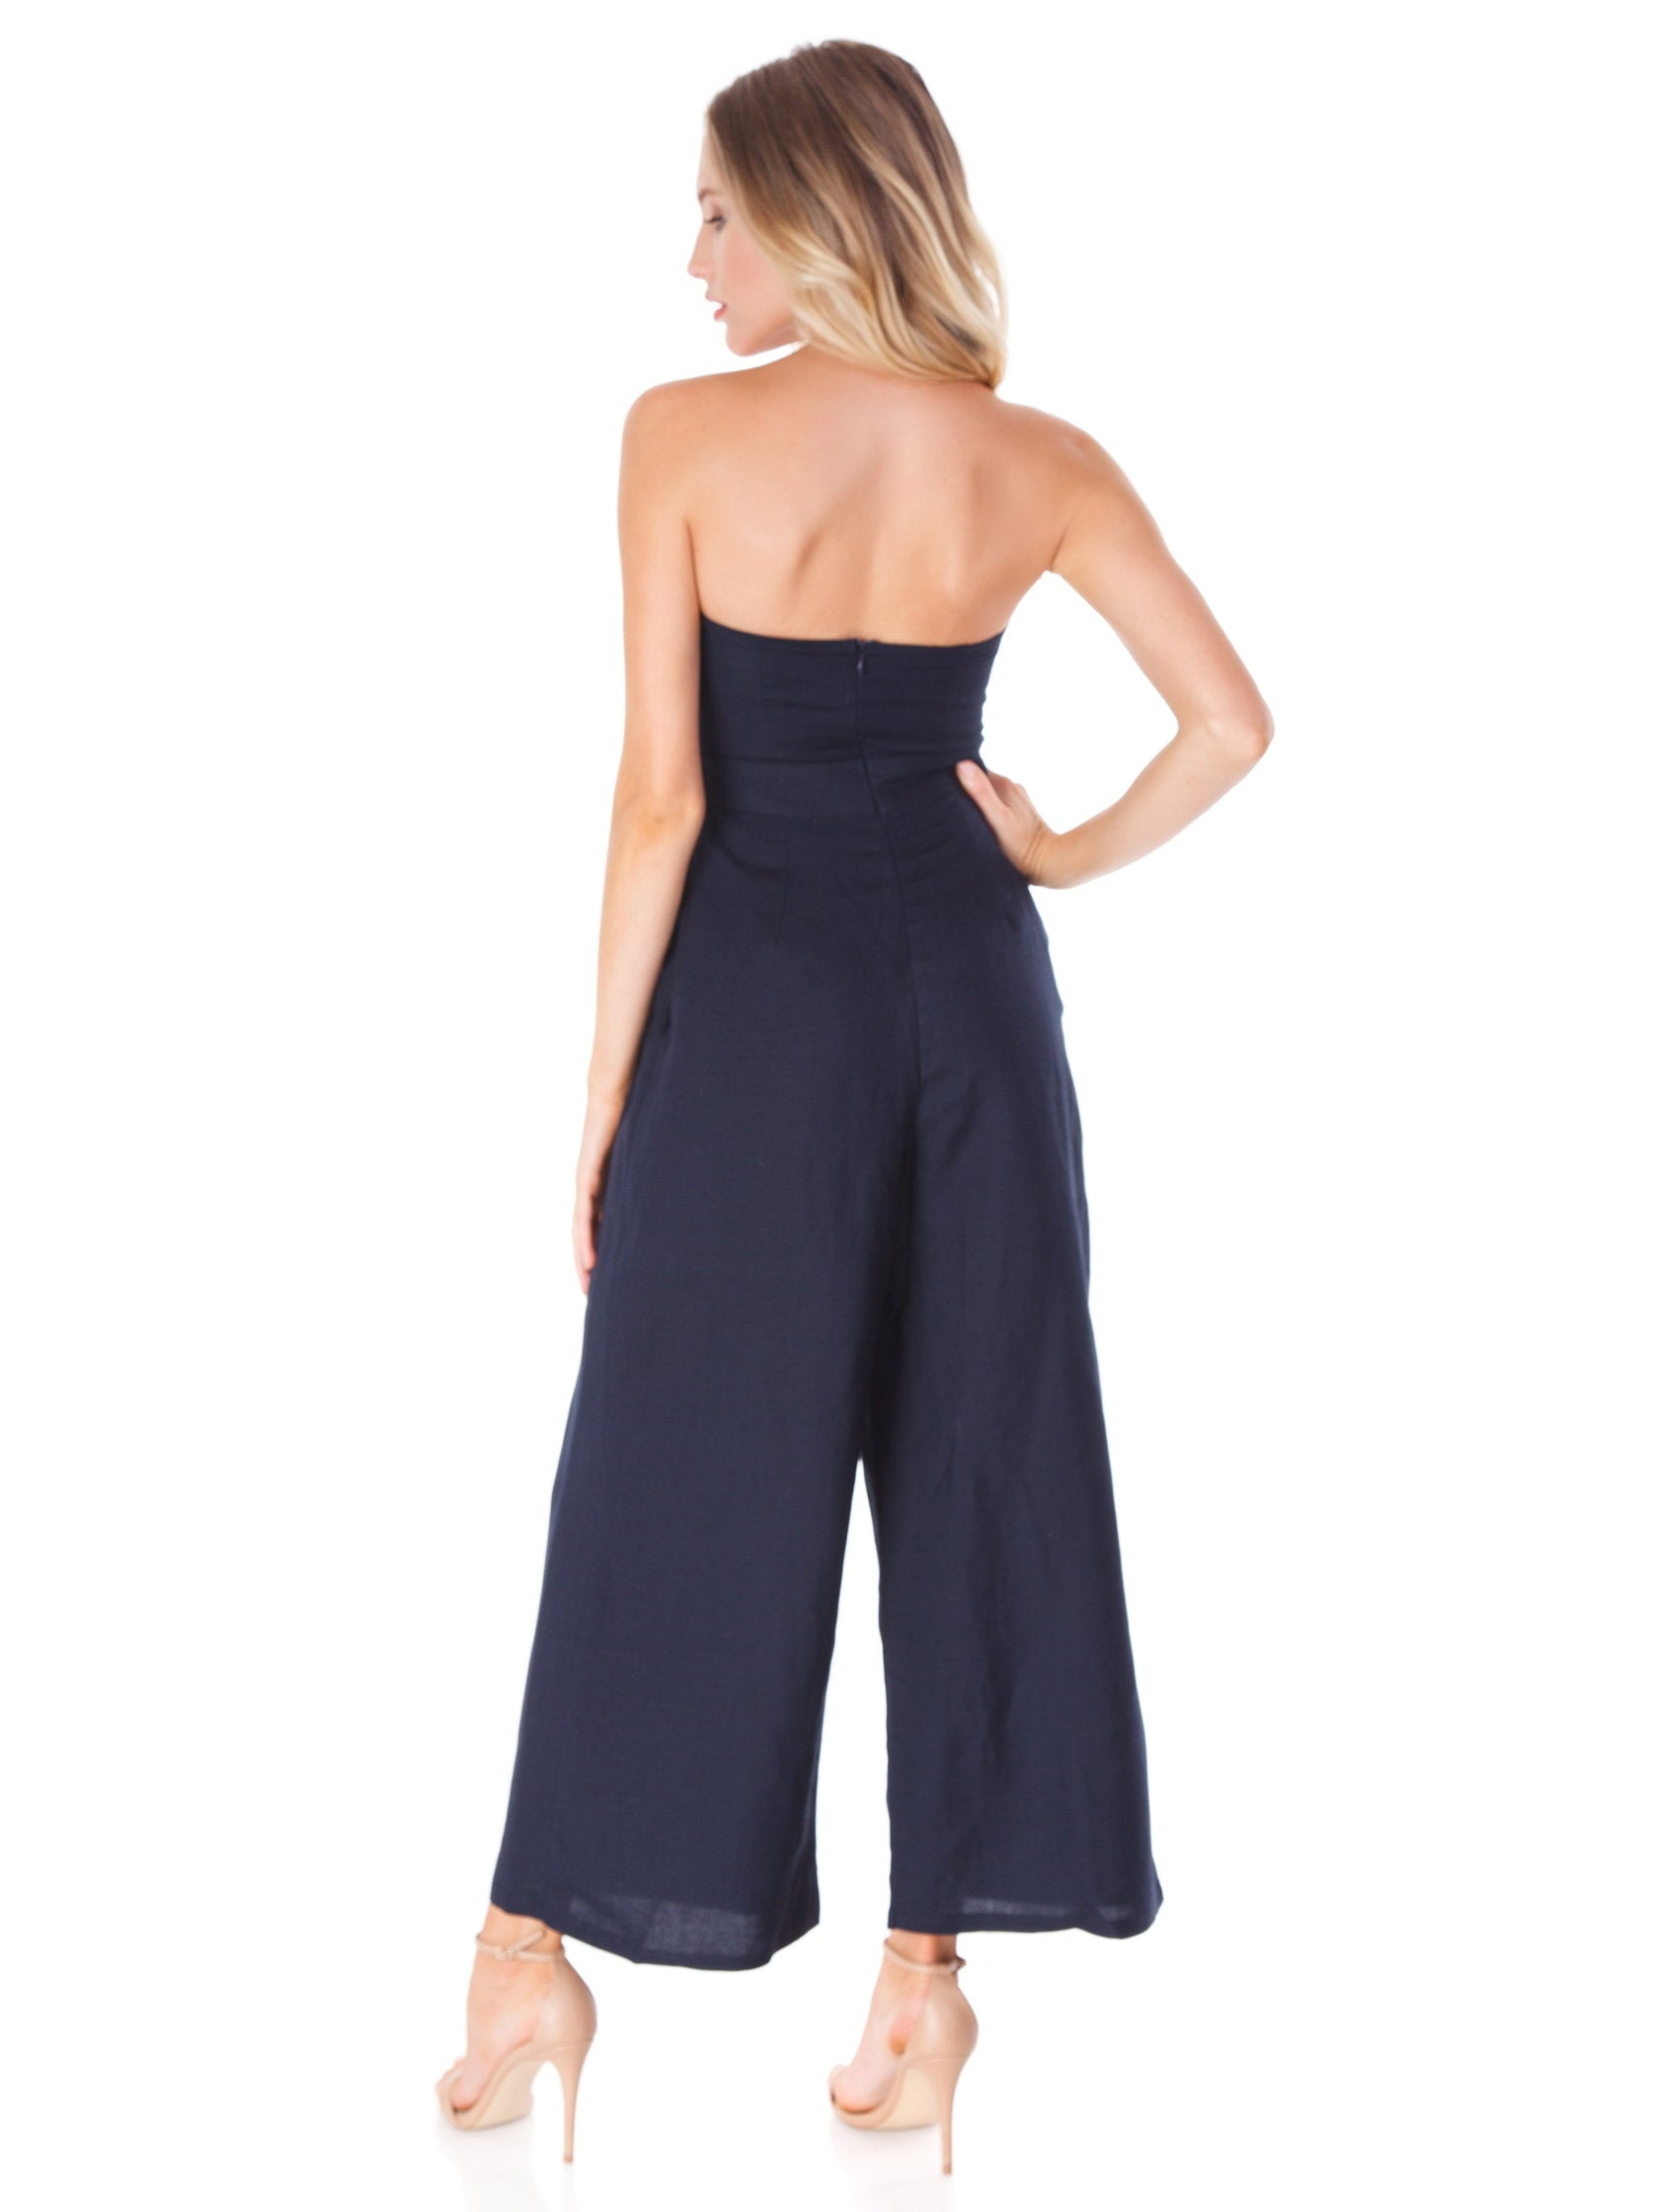 Women wearing a jumpsuit rental from ASTR called Mara Jumpsuit